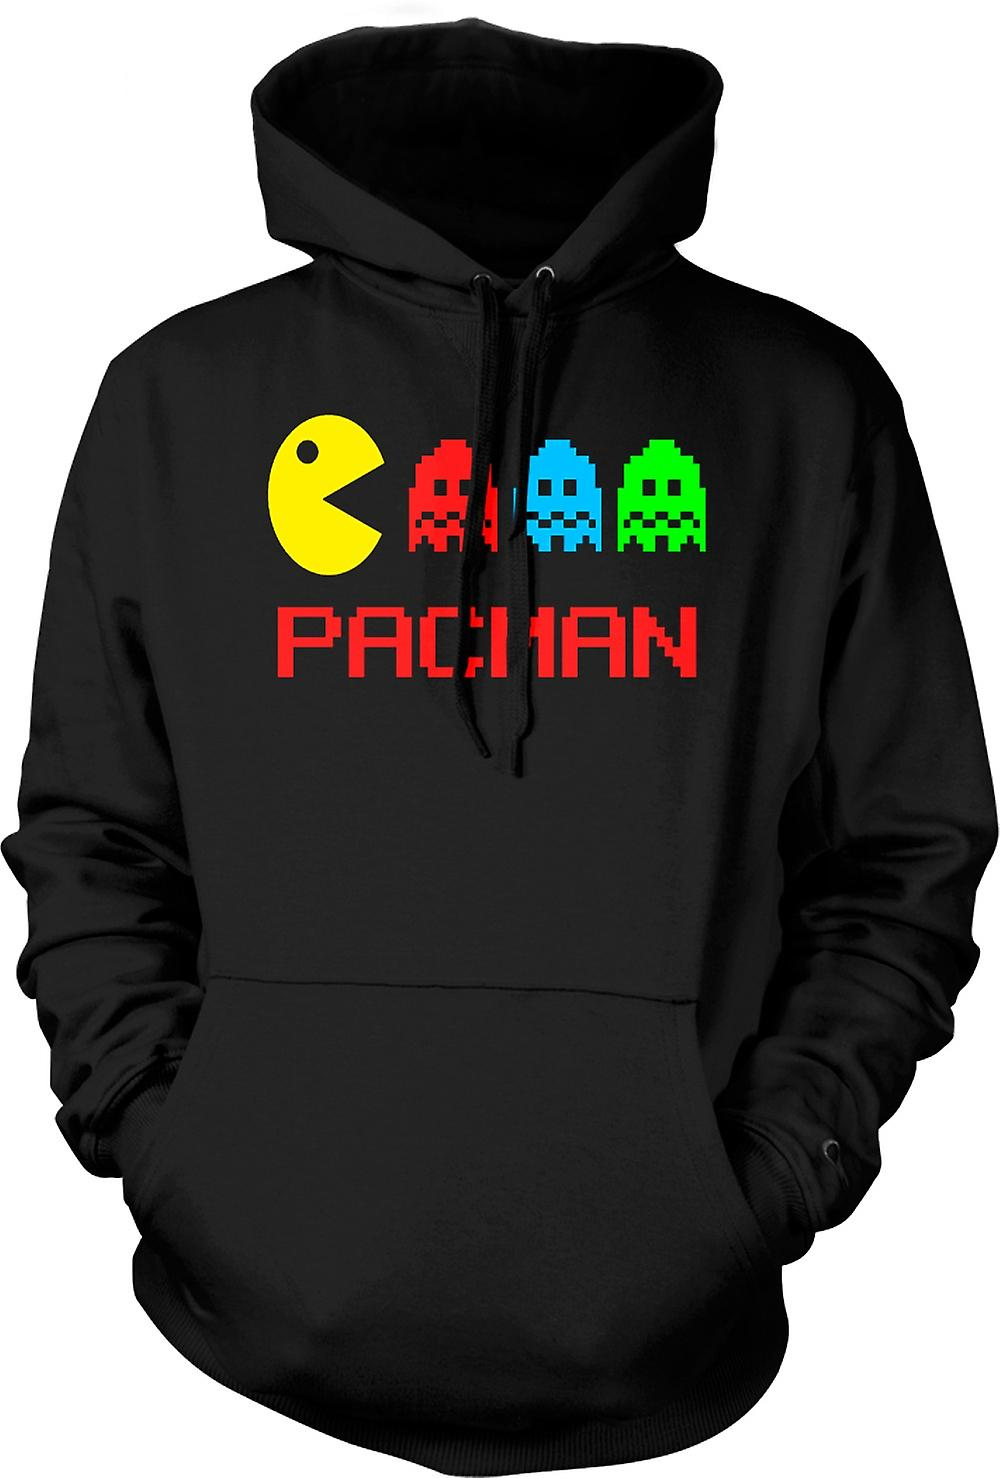 Mens Hoodie - Pacman - Retro - Old School Gamer